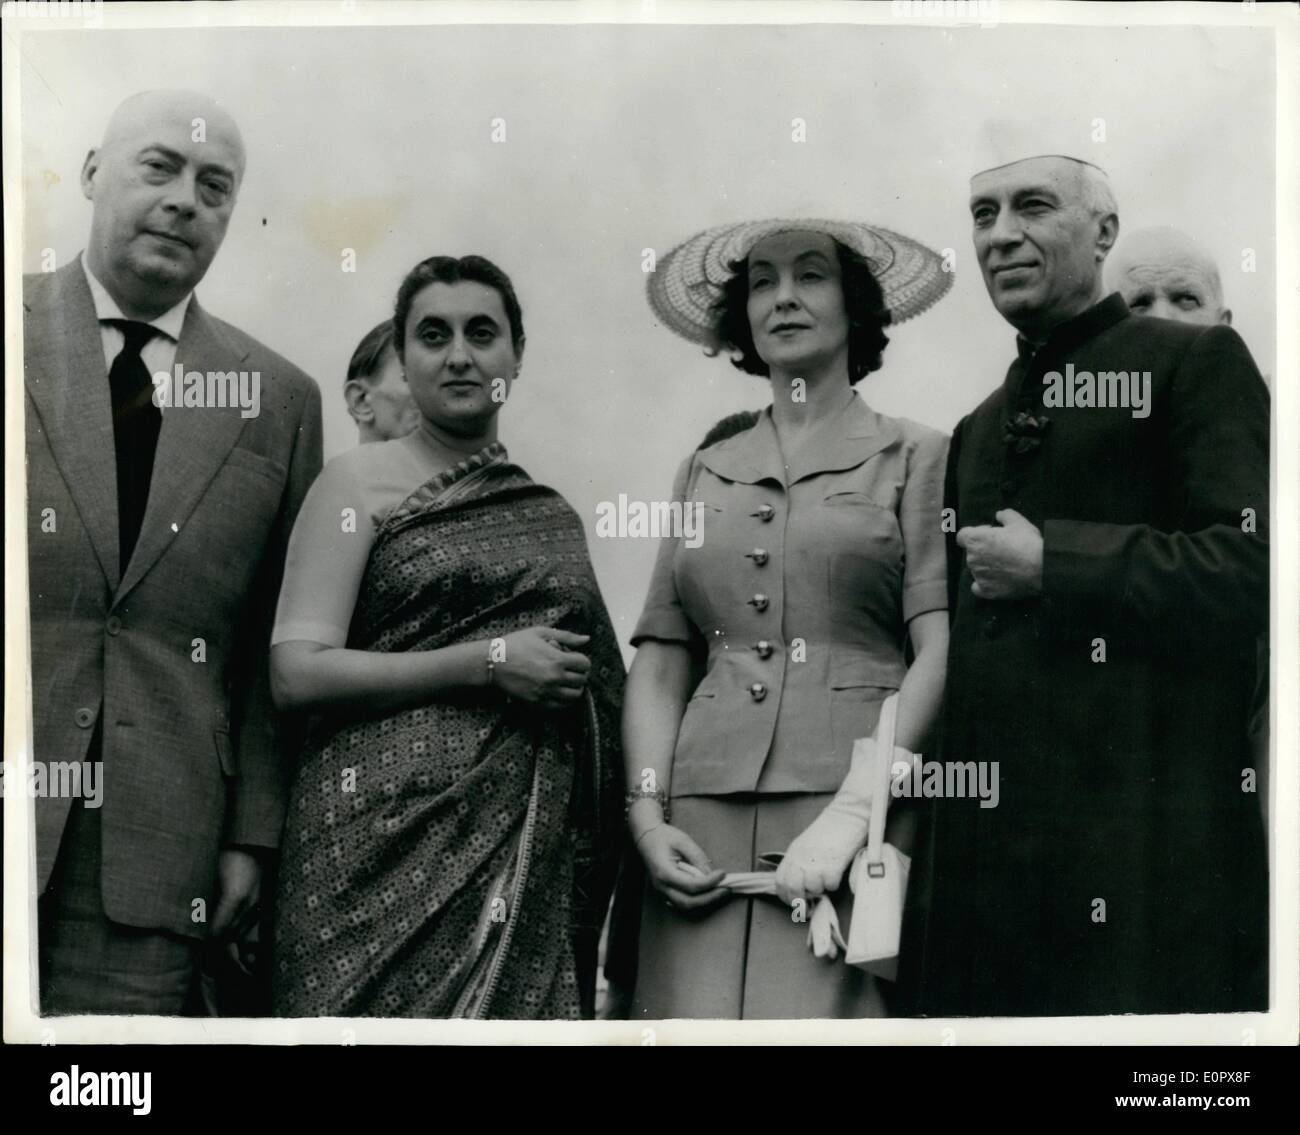 Apr. 04, 1957 - Polish Prime Minister in India.: Poland's Prime Minister Joseph Cvoankiewicz (left) with on right Indian Prime Minister Mr. Nehru during the official visit to New Delhi. The Polish leader and Mr. Nehru signed a cultural agreement on behalf of their Governments - during the visit. - Stock Image